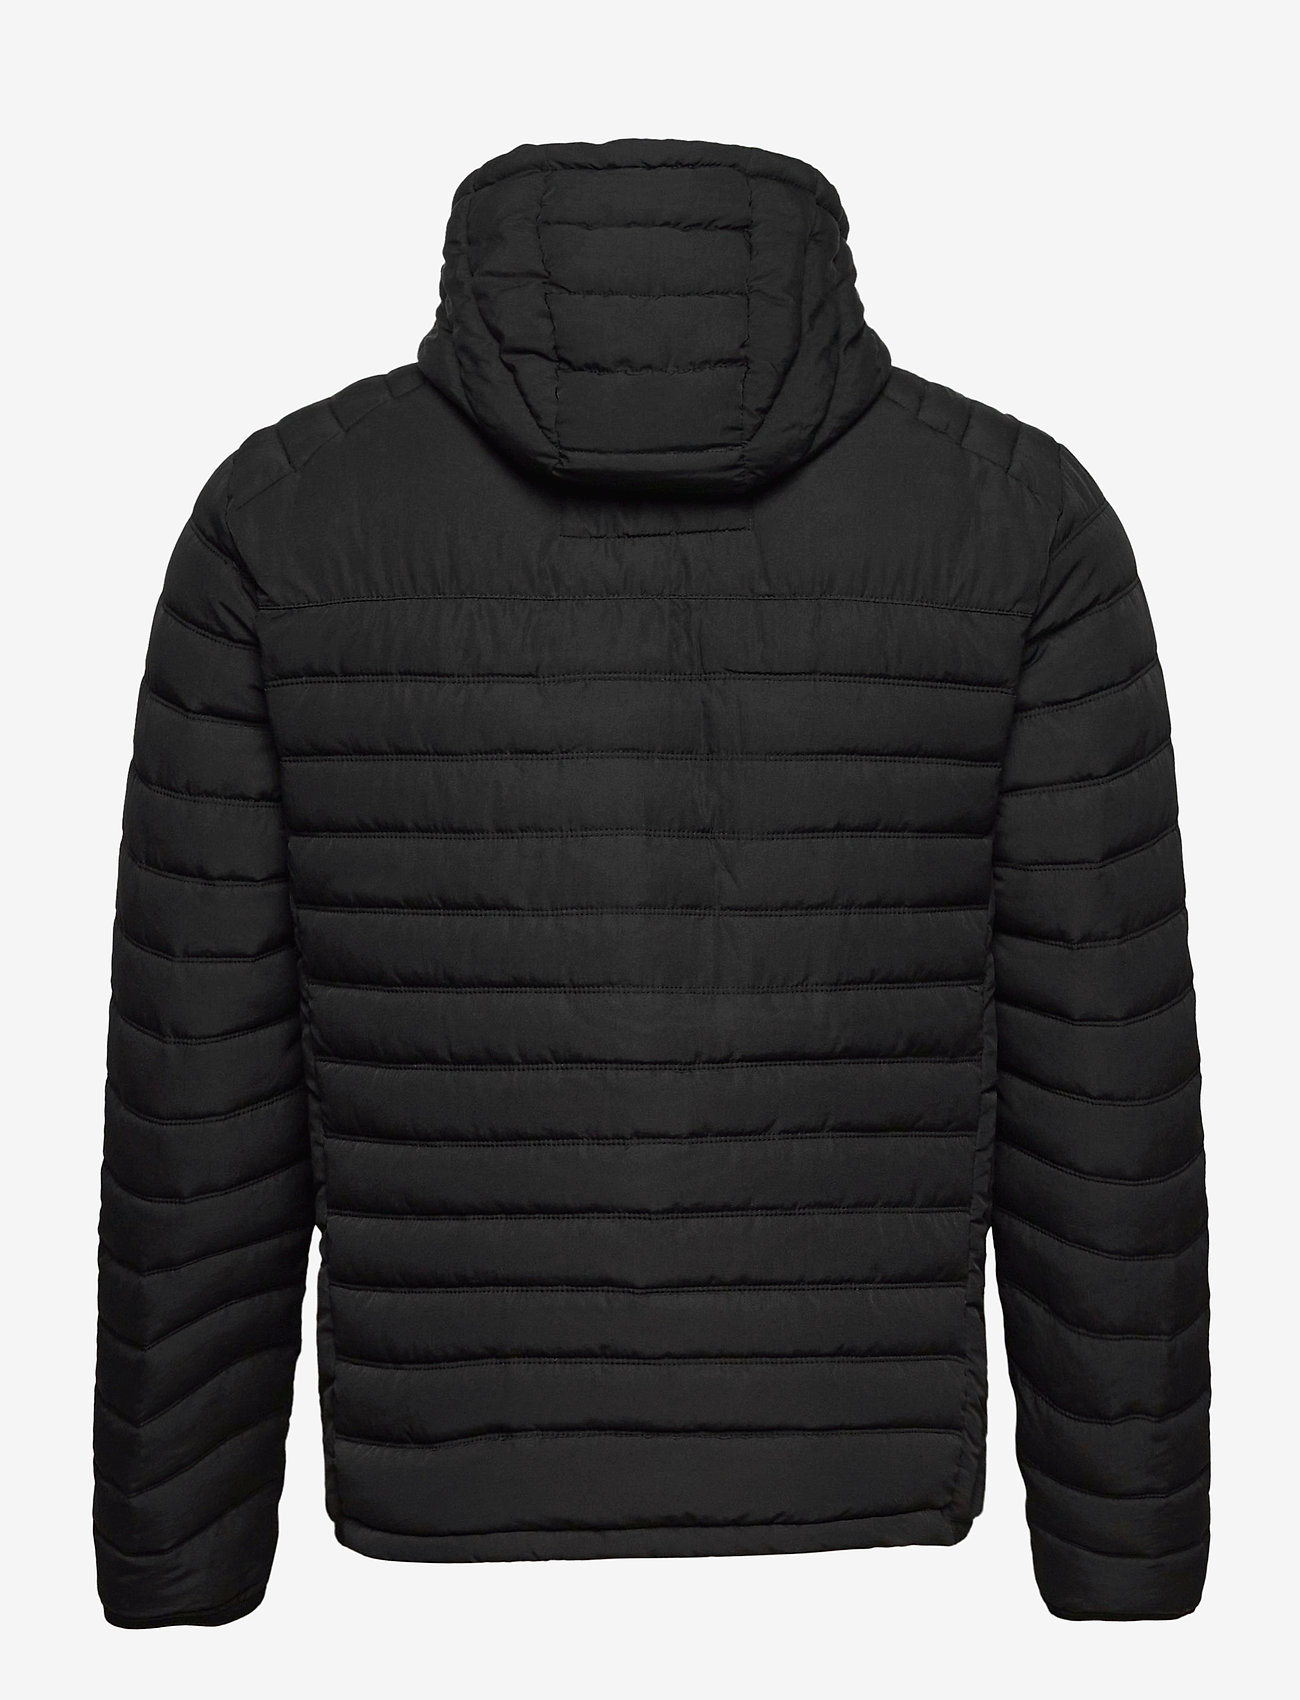 Jack & Jones - JJBASE LIGHT HOOD JACKET - forede jakker - black - 1